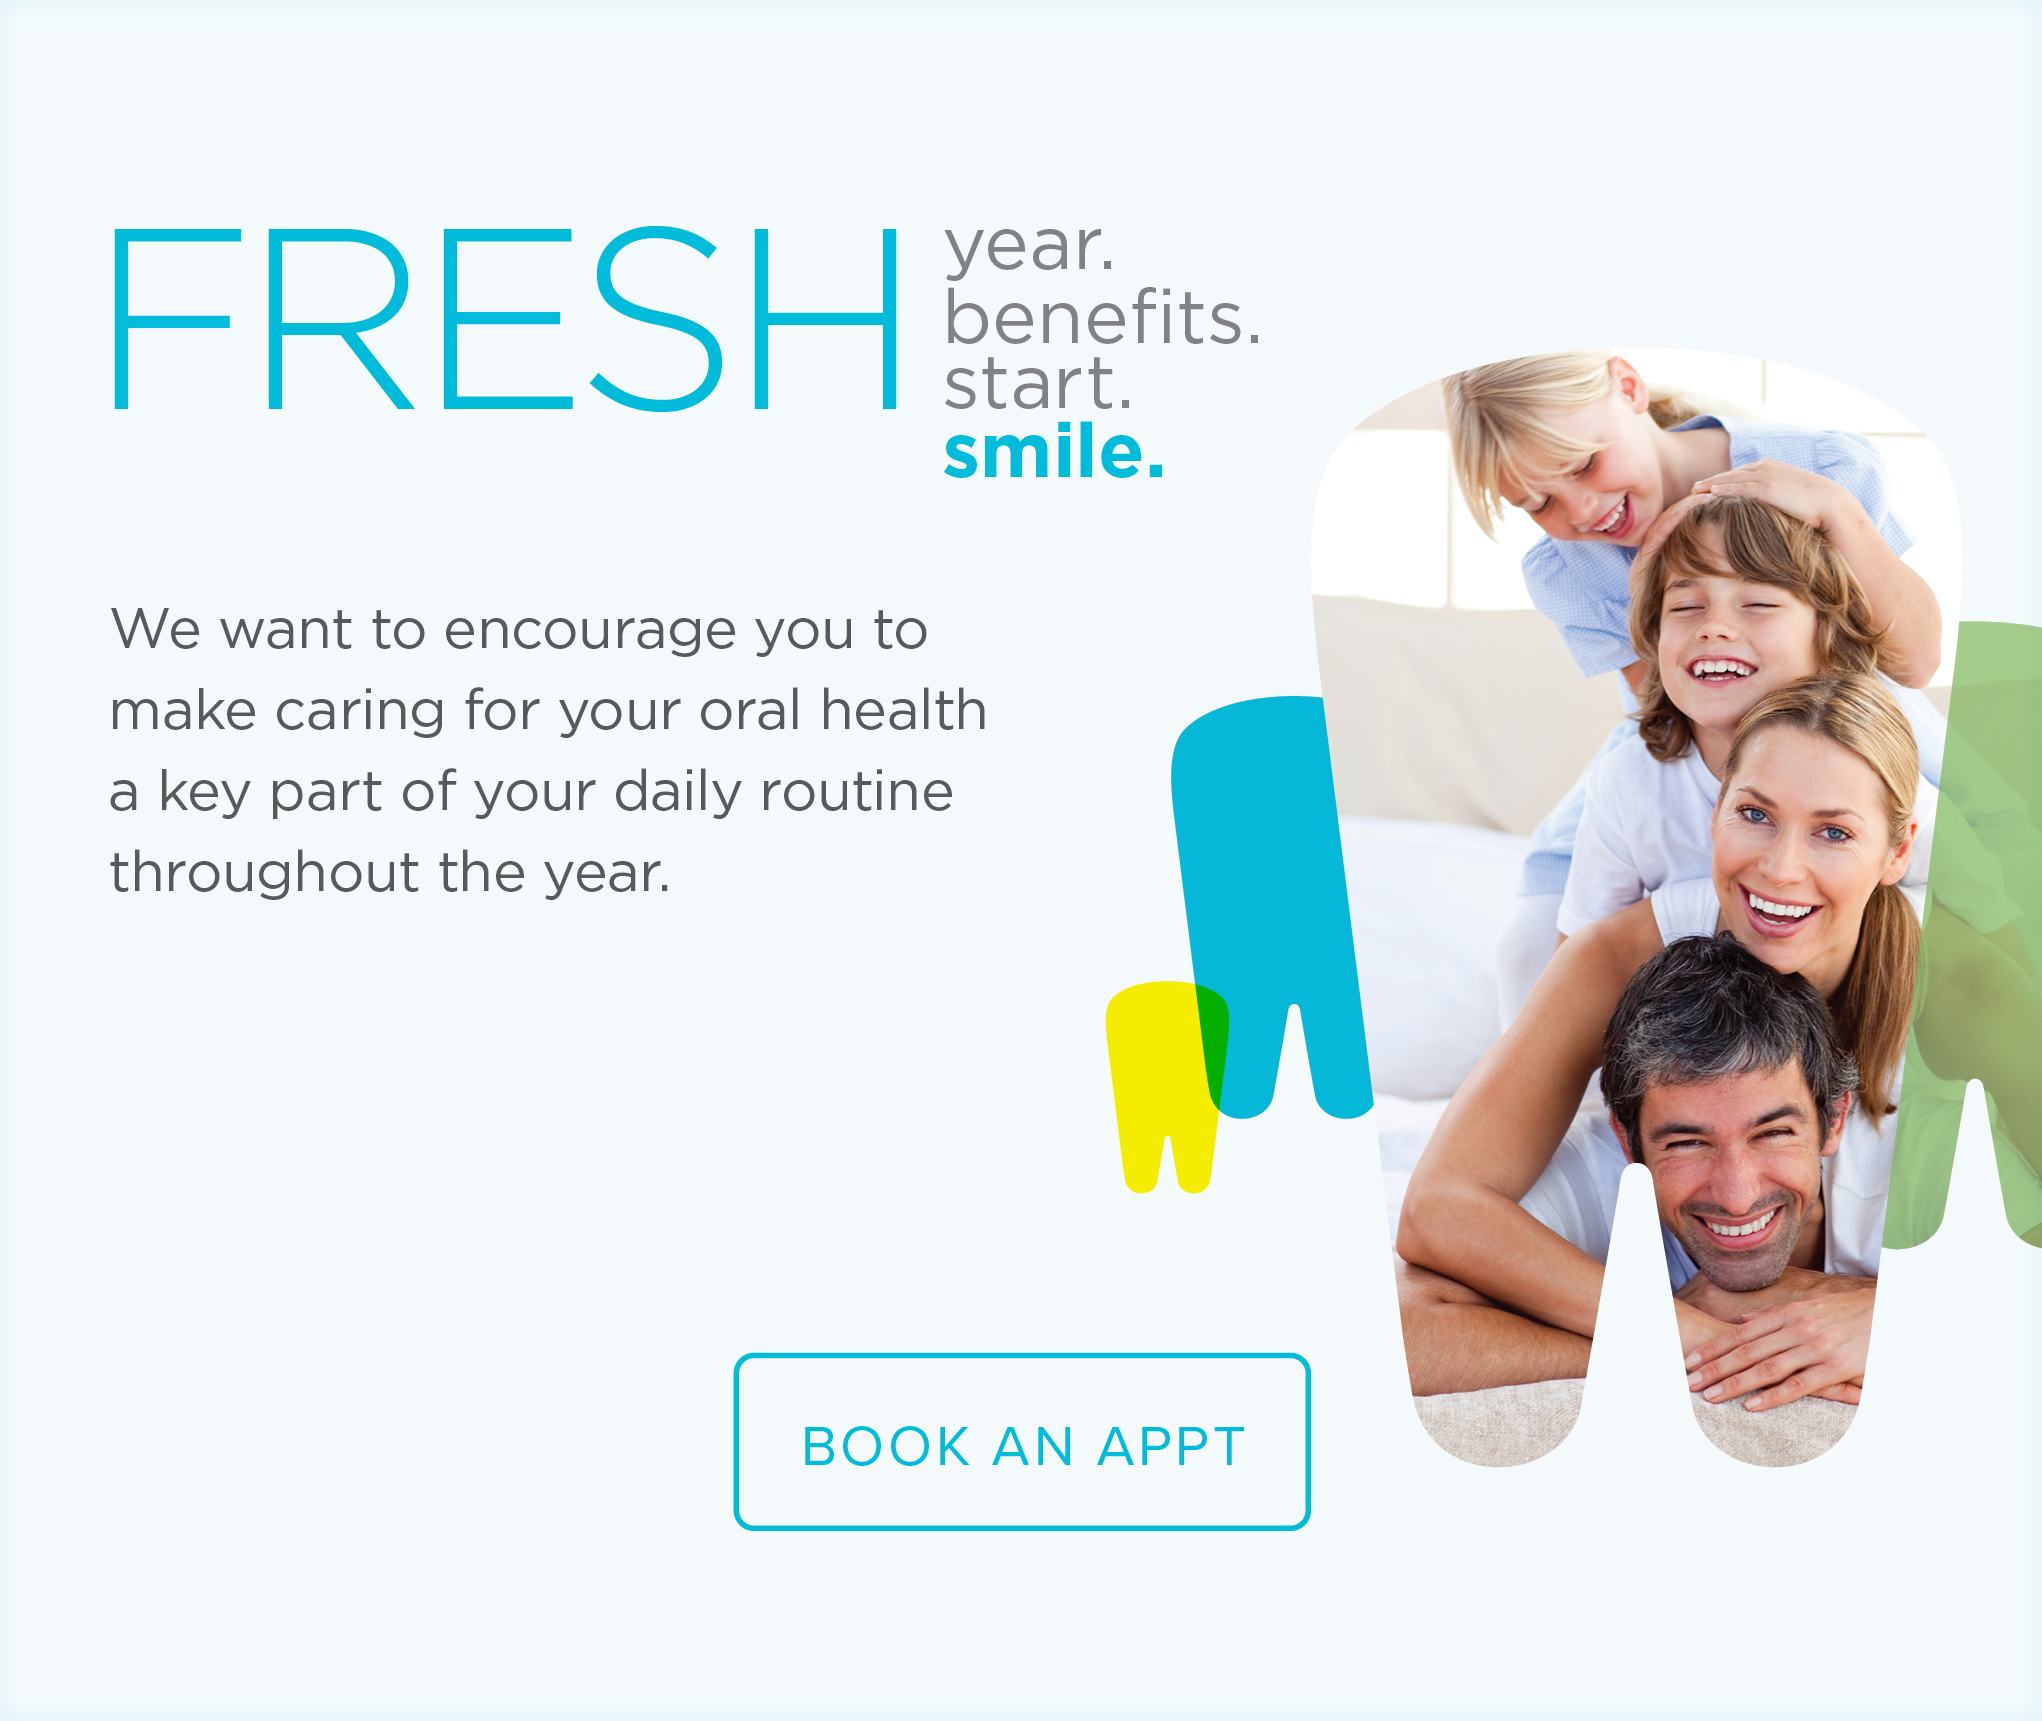 Menifee Smiles Dentistry - Make the Most of Your Benefits